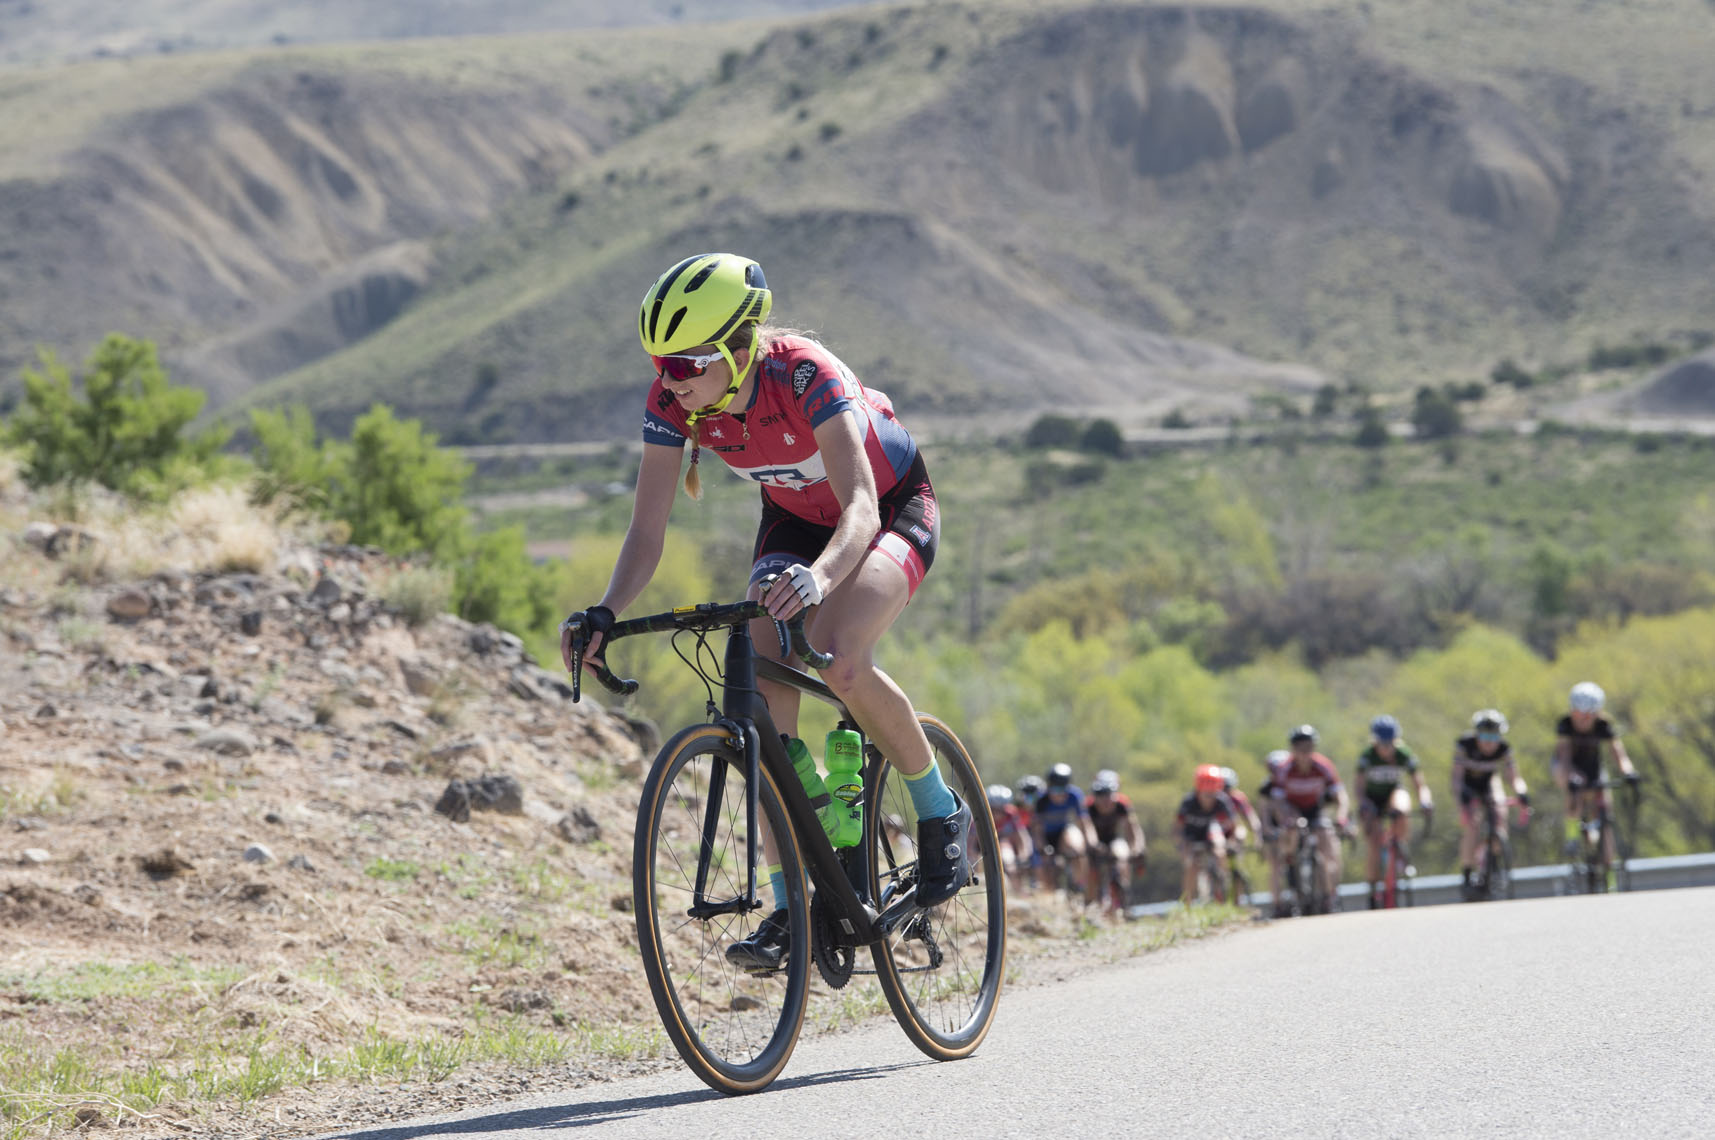 2018 USA Cycling Collegiate National Championships